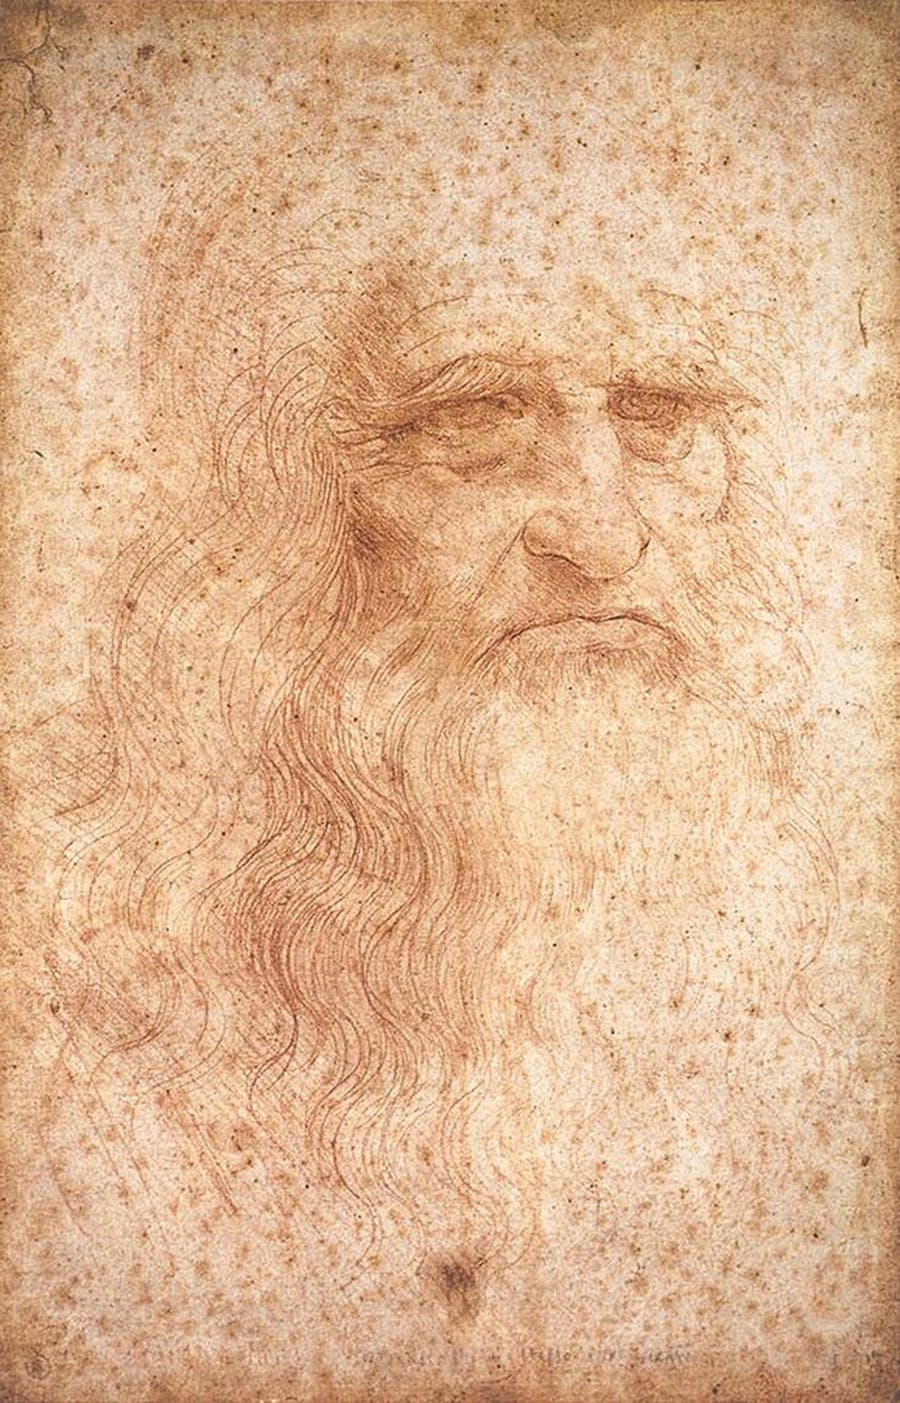 """The red chalk drawing from around 1512, which is in the Biblioteca Reale in Turin, is generally referred to as the """"Self-Portrait of Leonardo da Vinci."""" Image via Wikimedia Commons"""